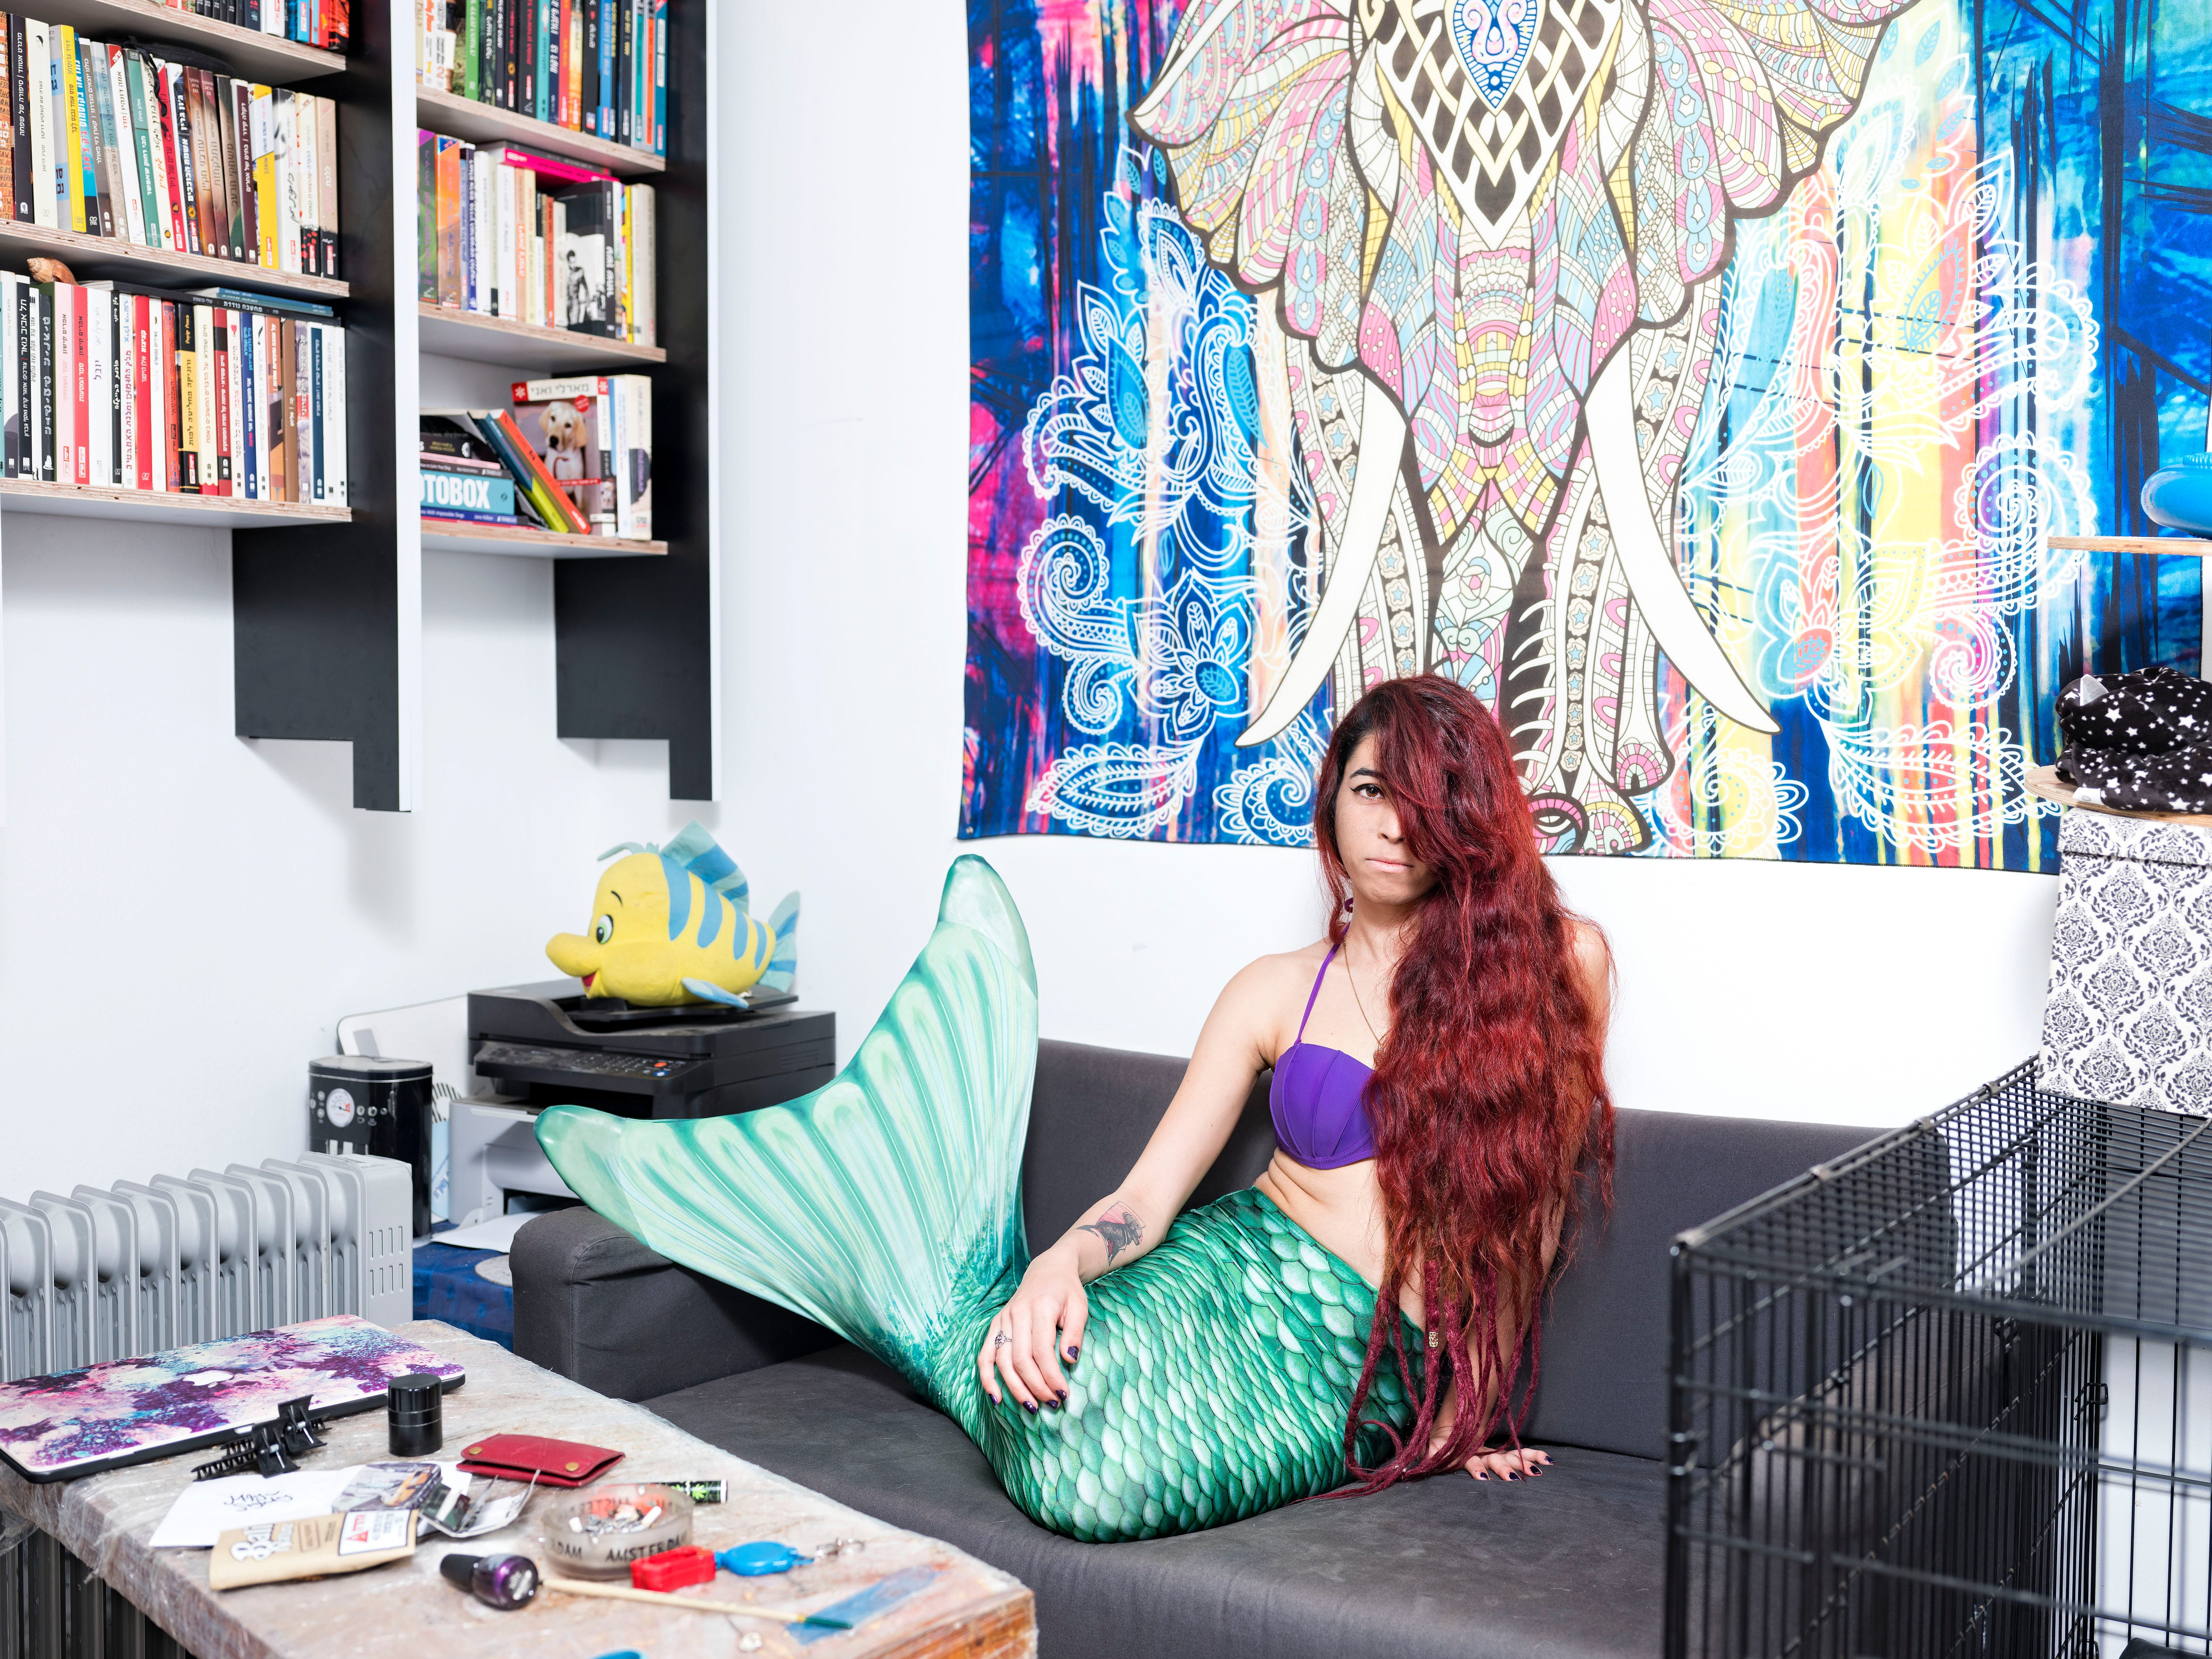 In this Sunday, Feb. 24, 2019 photo, May Lighty Cohen, a member of the Israeli Mermaid Community, poses for a portrait as she wears a mermaid tail at her home in Herzliya, Israel.